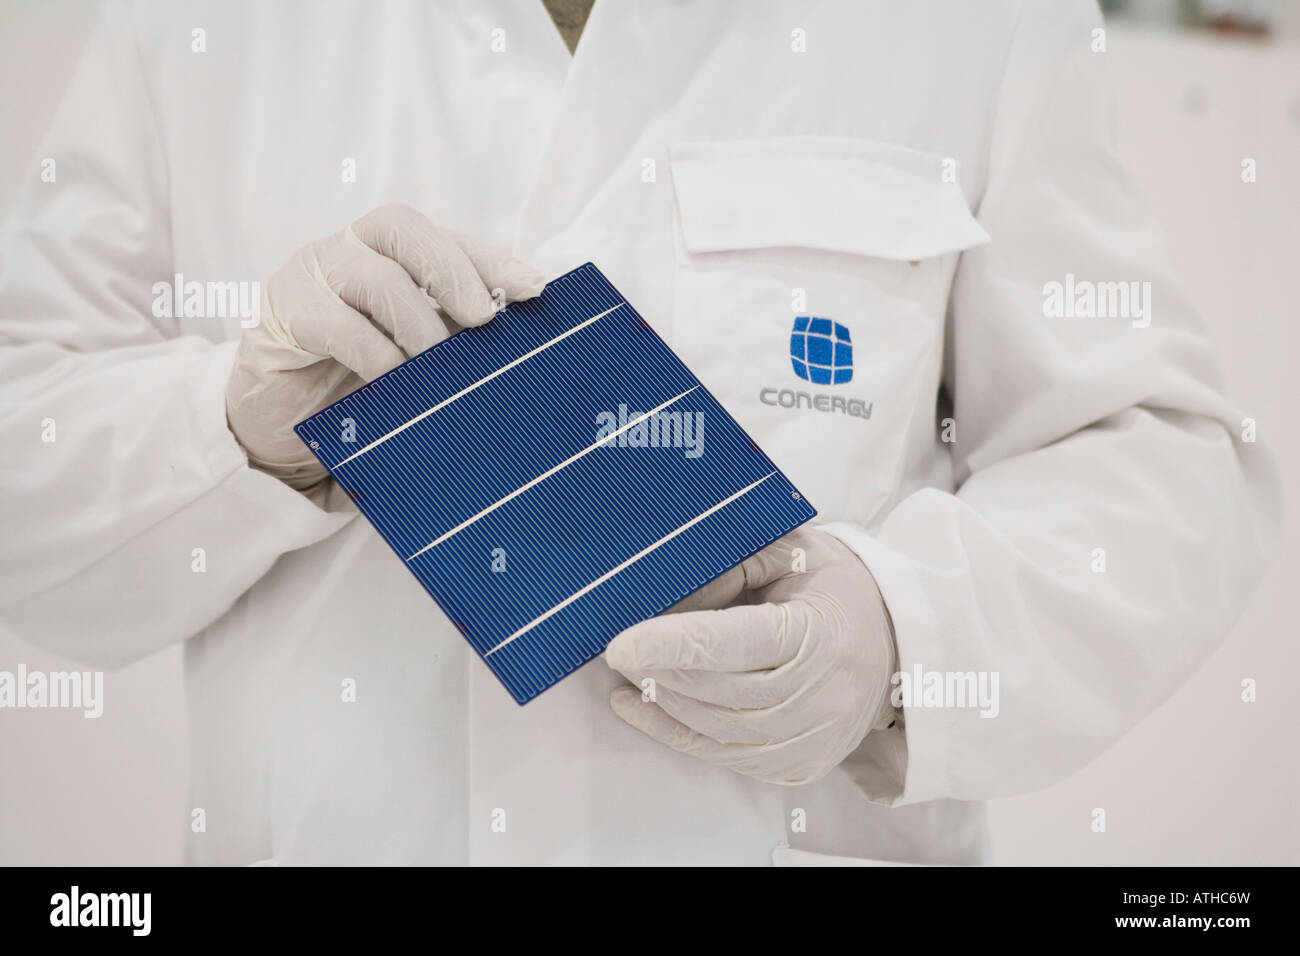 Conergy SolarModule GmbH Co KG production of solar cells - Stock Image